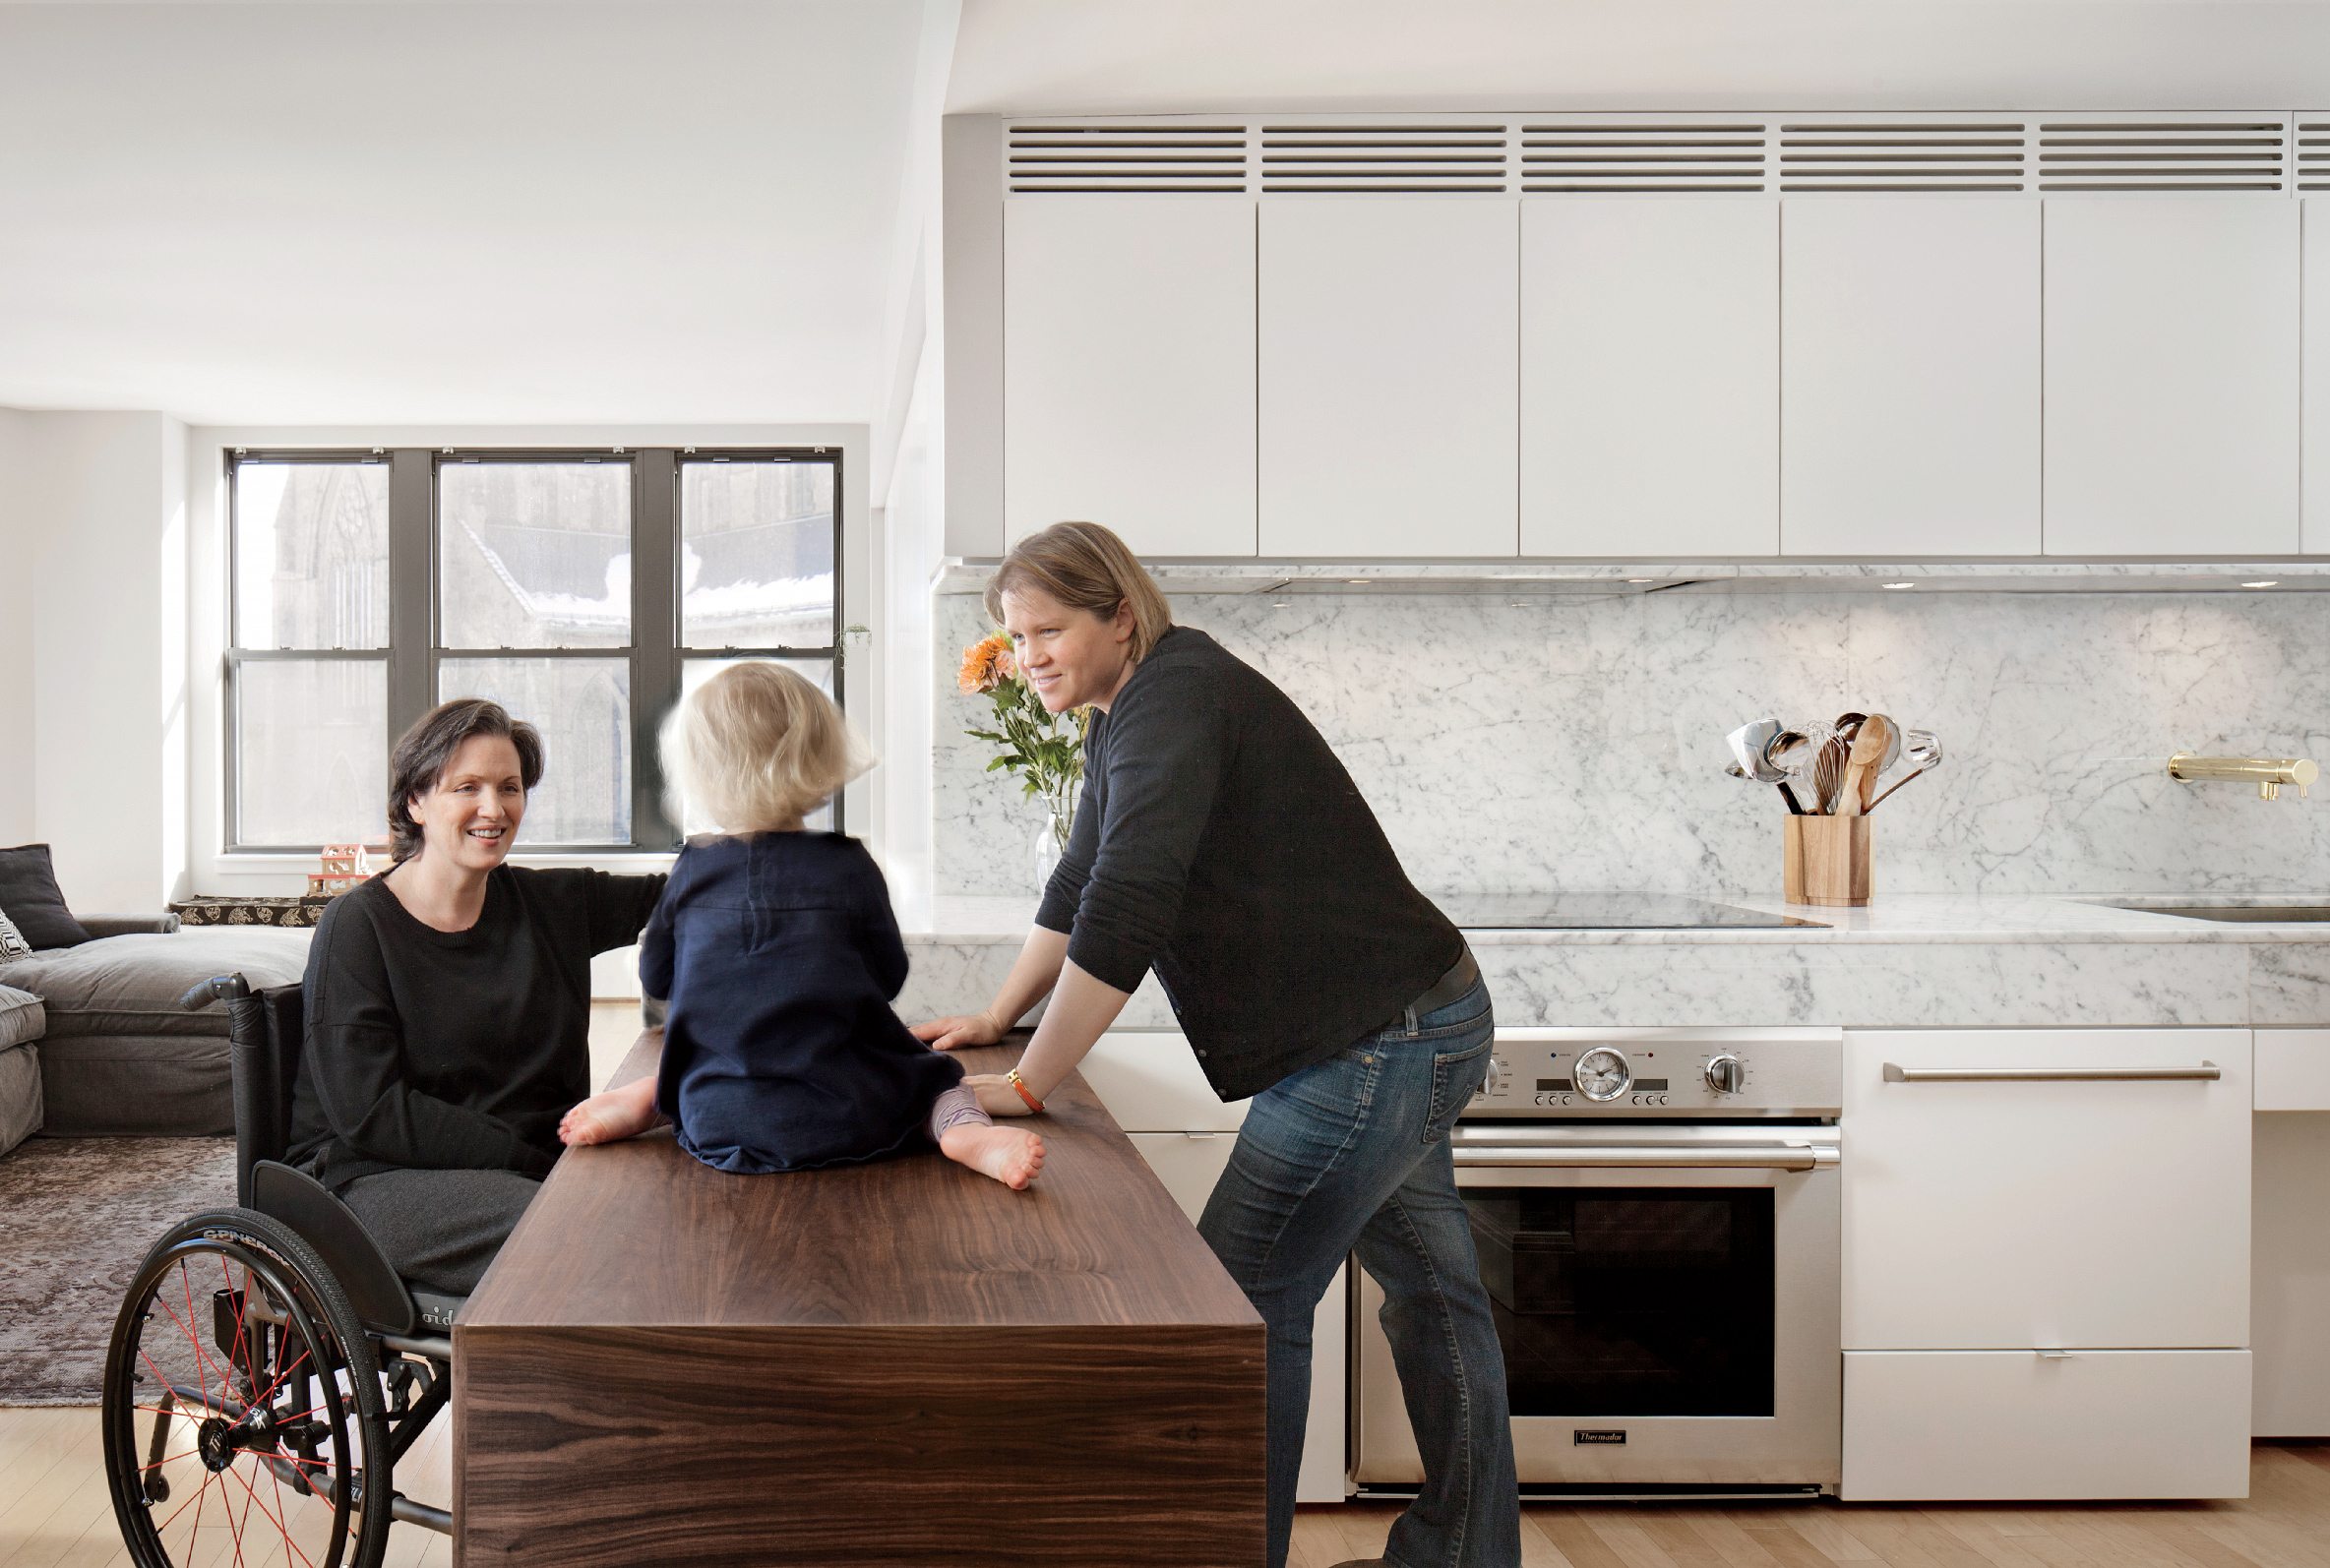 Mondern Boston family kitchen renovation that's wheelchair accessible